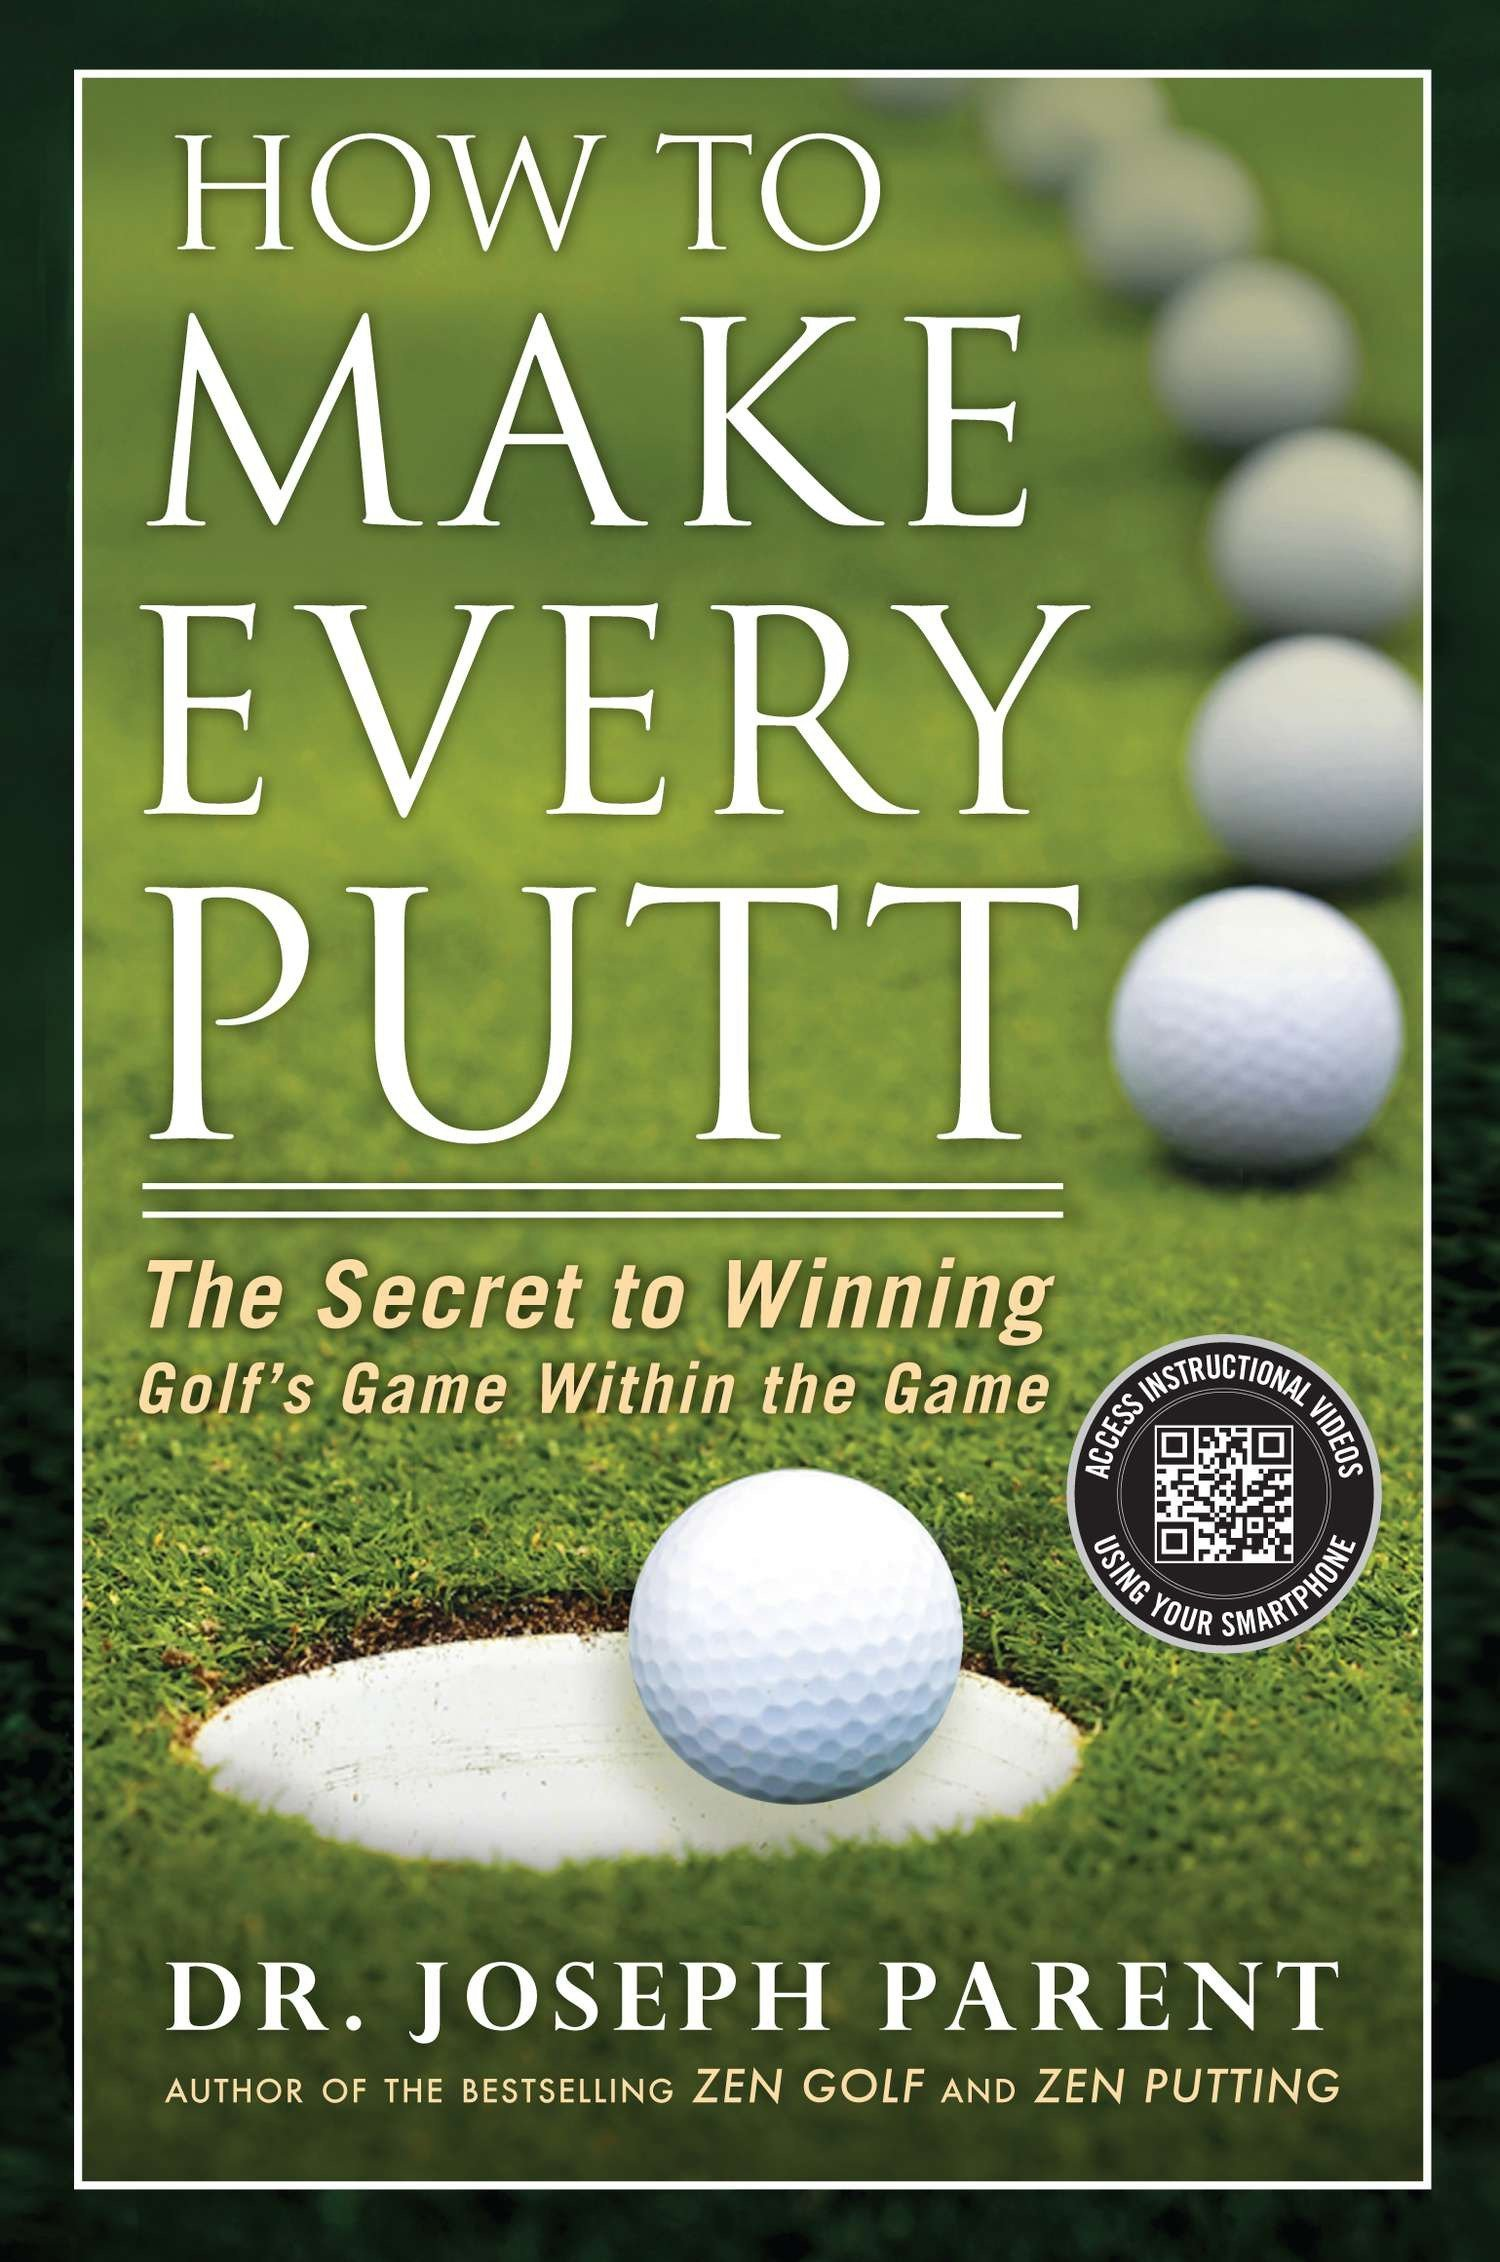 How To Make Every Putt  The Secret To Winning Golf's Game Within The Game